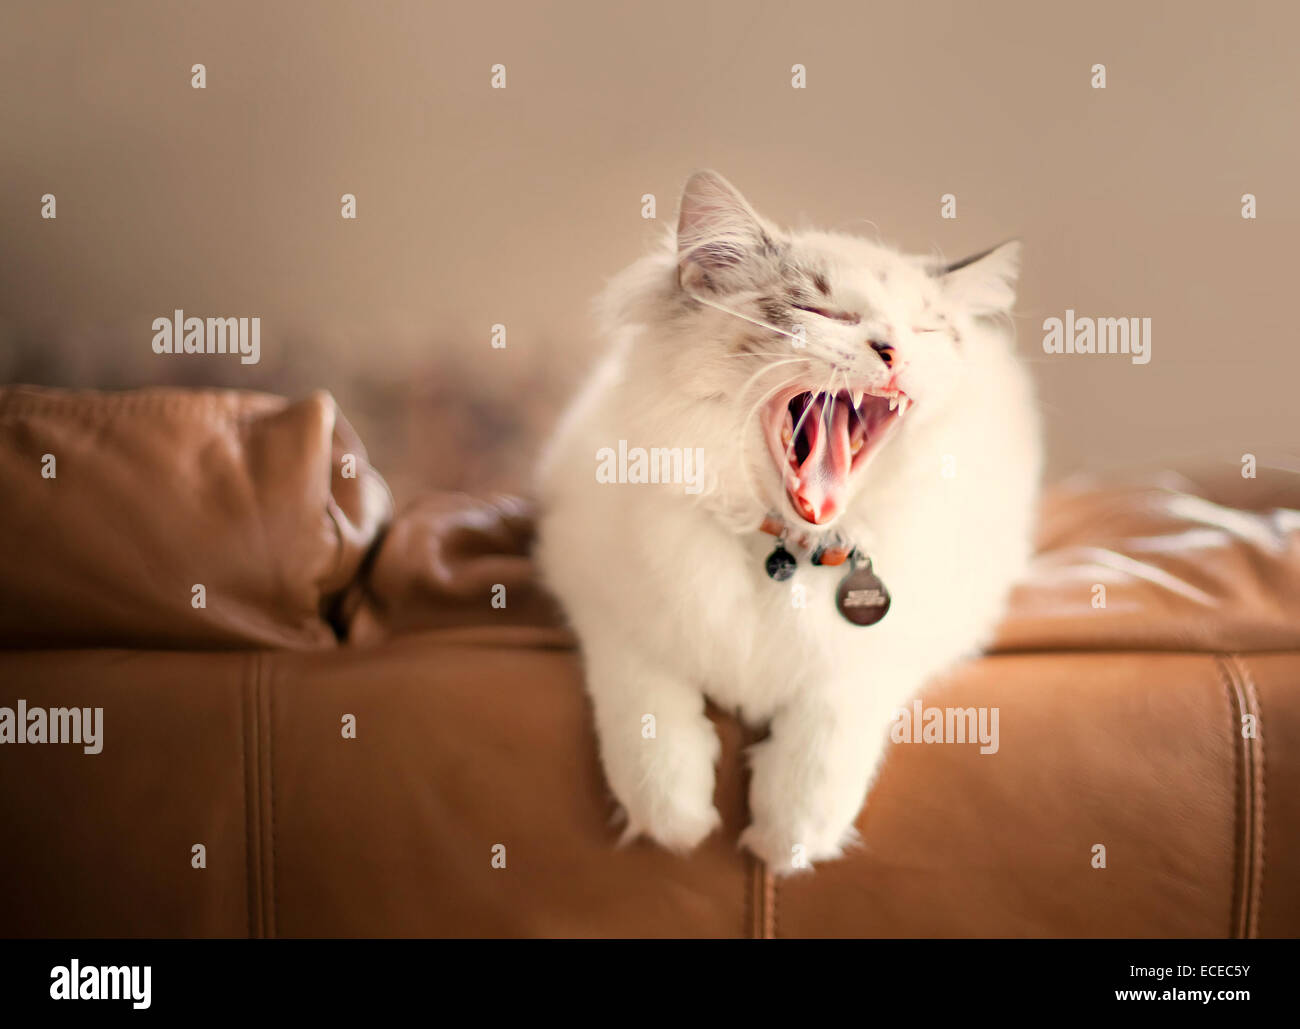 Cat sitting on a couch yawning Banque D'Images